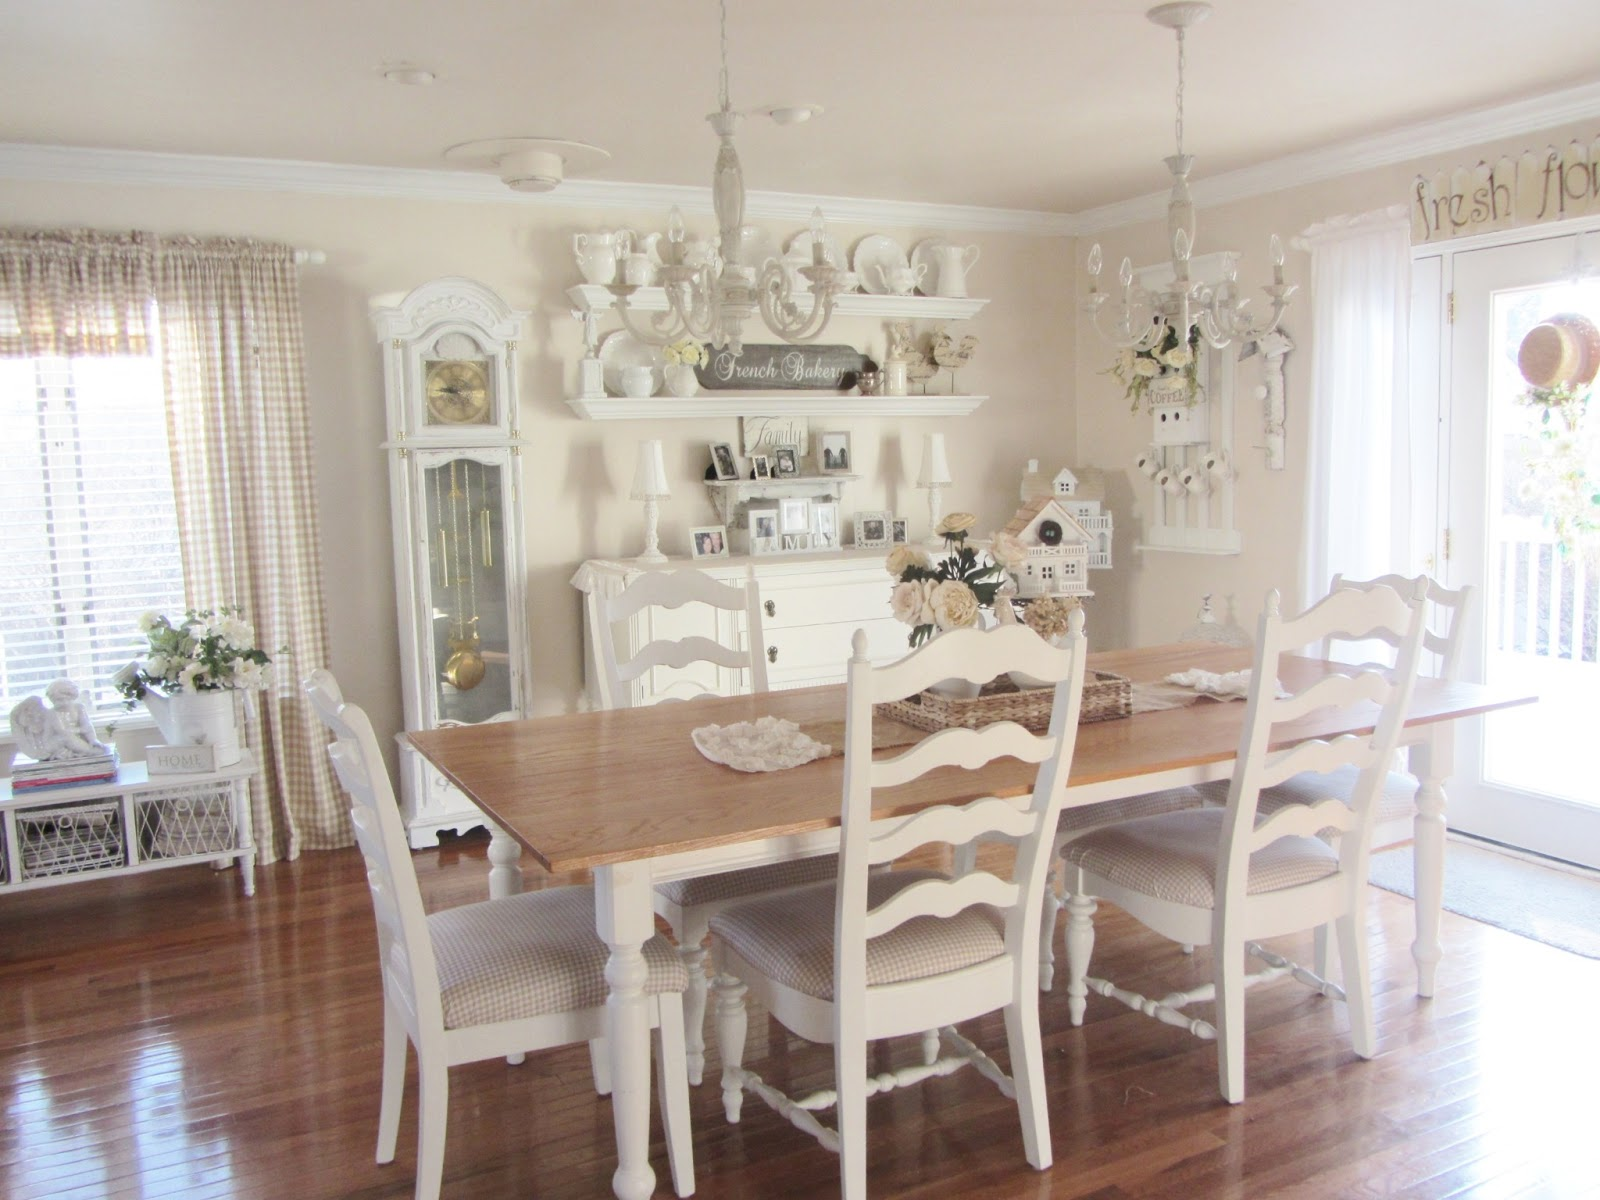 Sunday January 27 2013 Next On The Home Tour Is My Dining Room